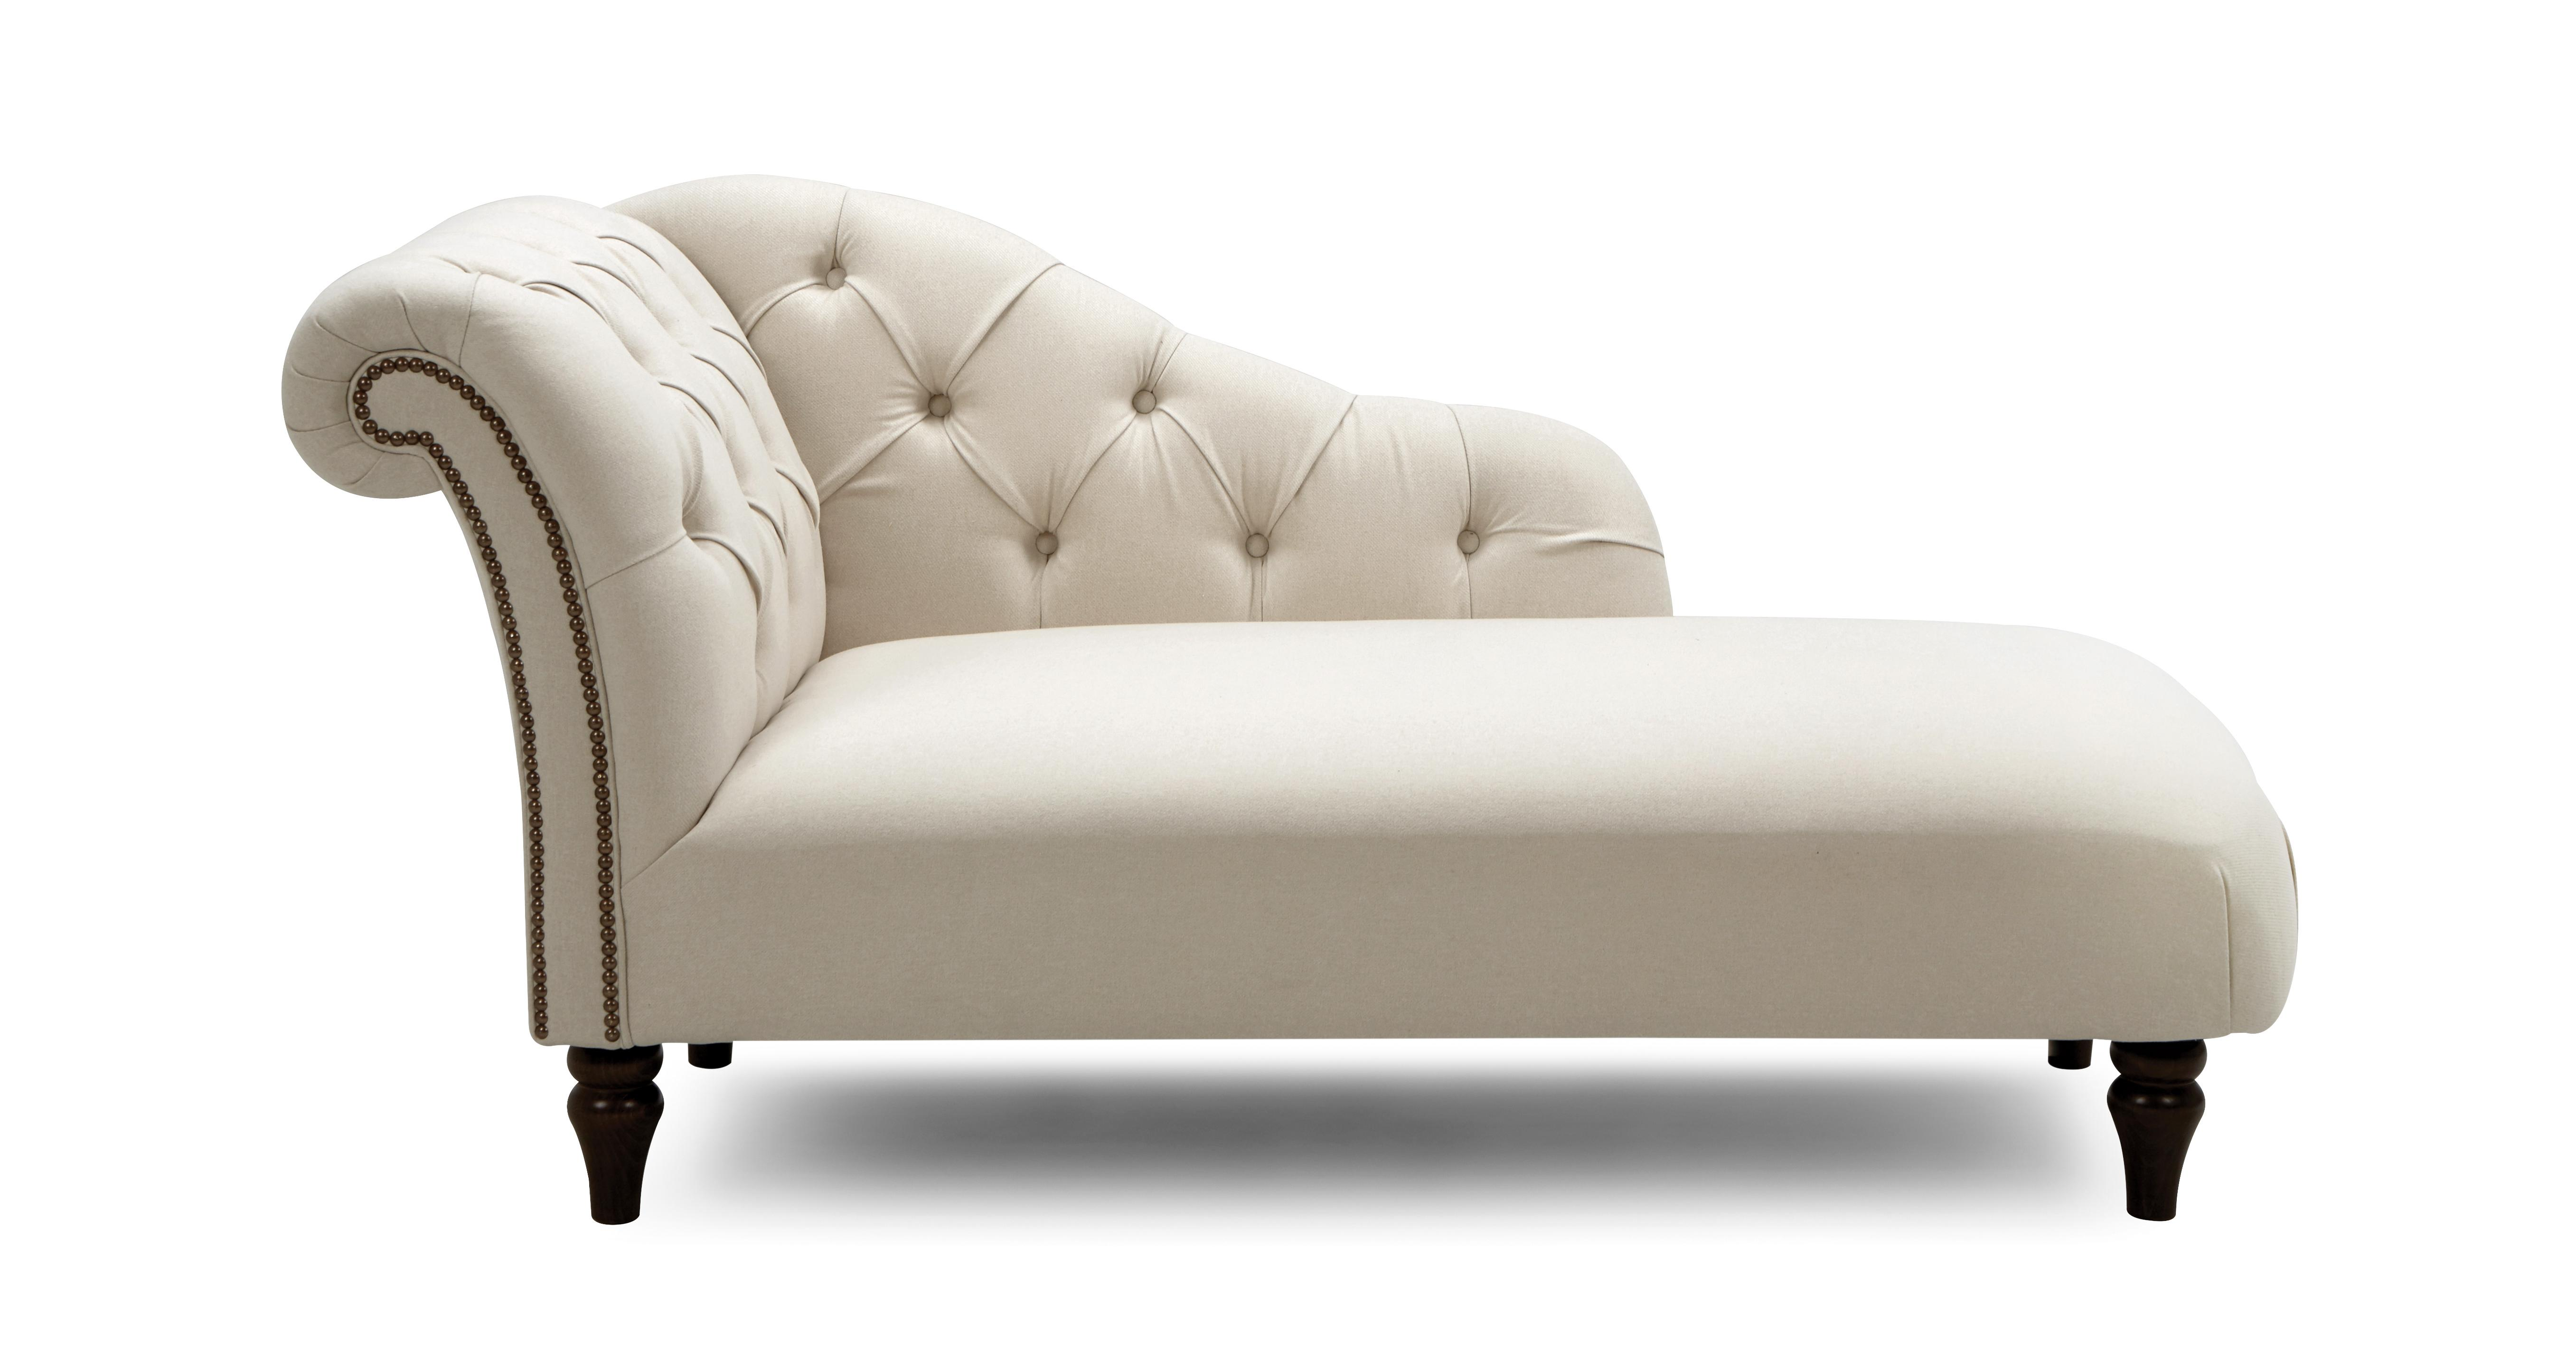 Cambourne Chaise Longue Dfs